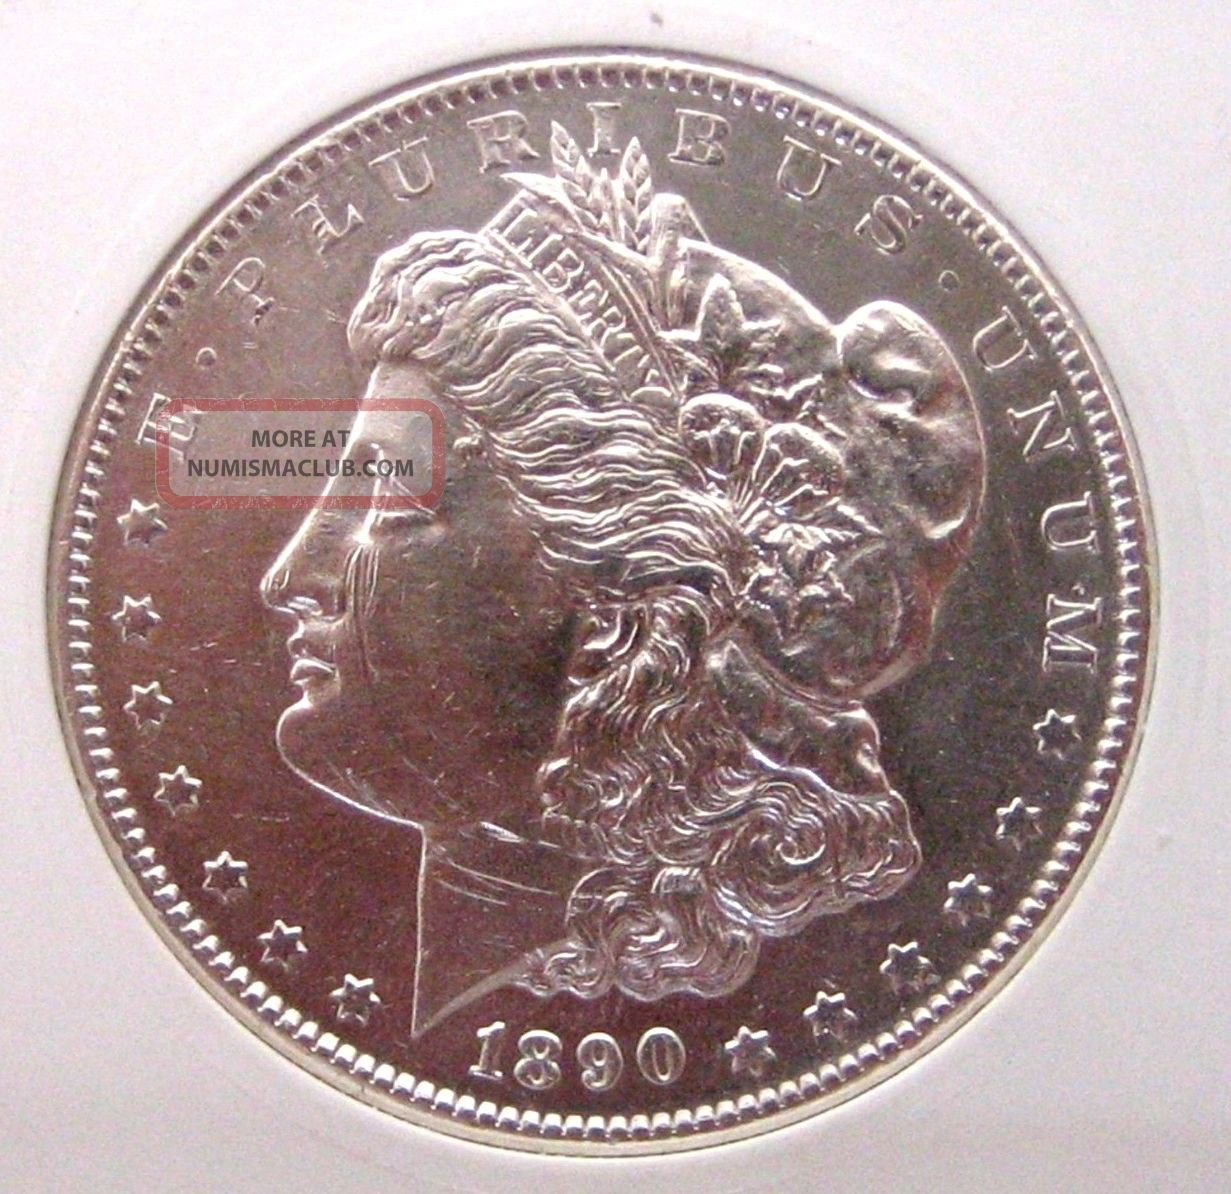 1890 S Morgan Dollar Almost Uncirculated Silver